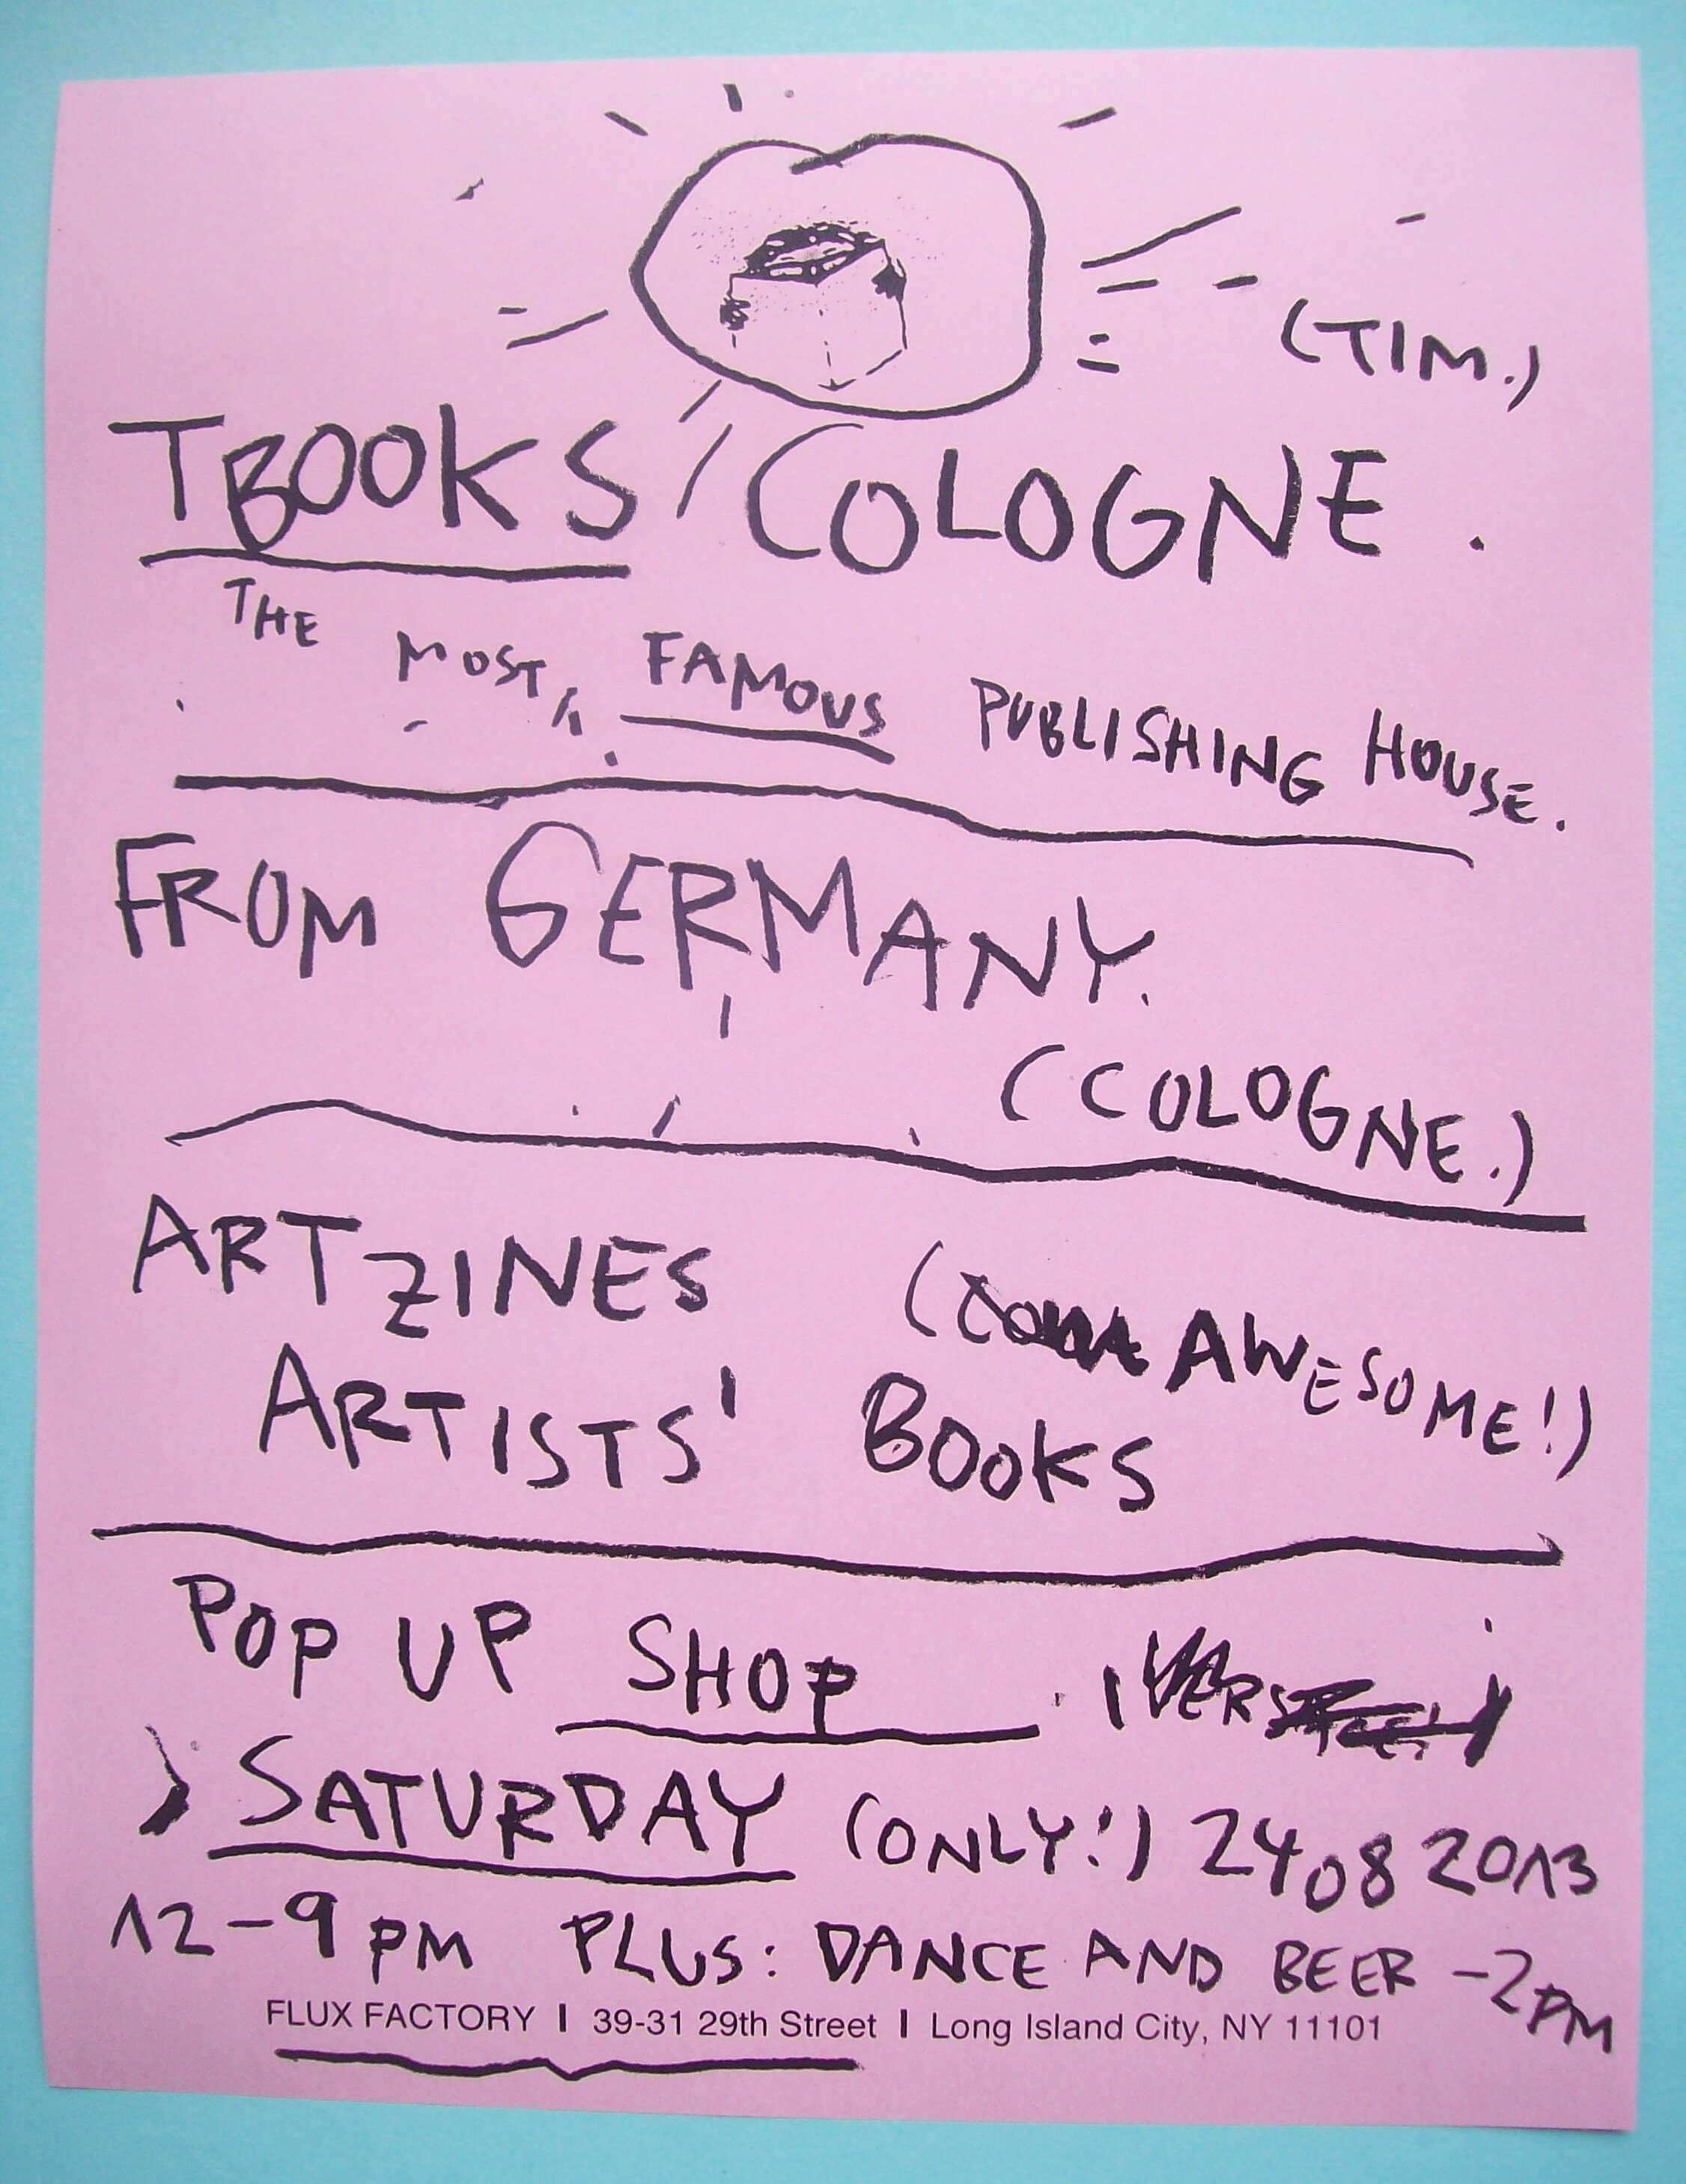 TBOOKS COLOGNE Pop Up Shop